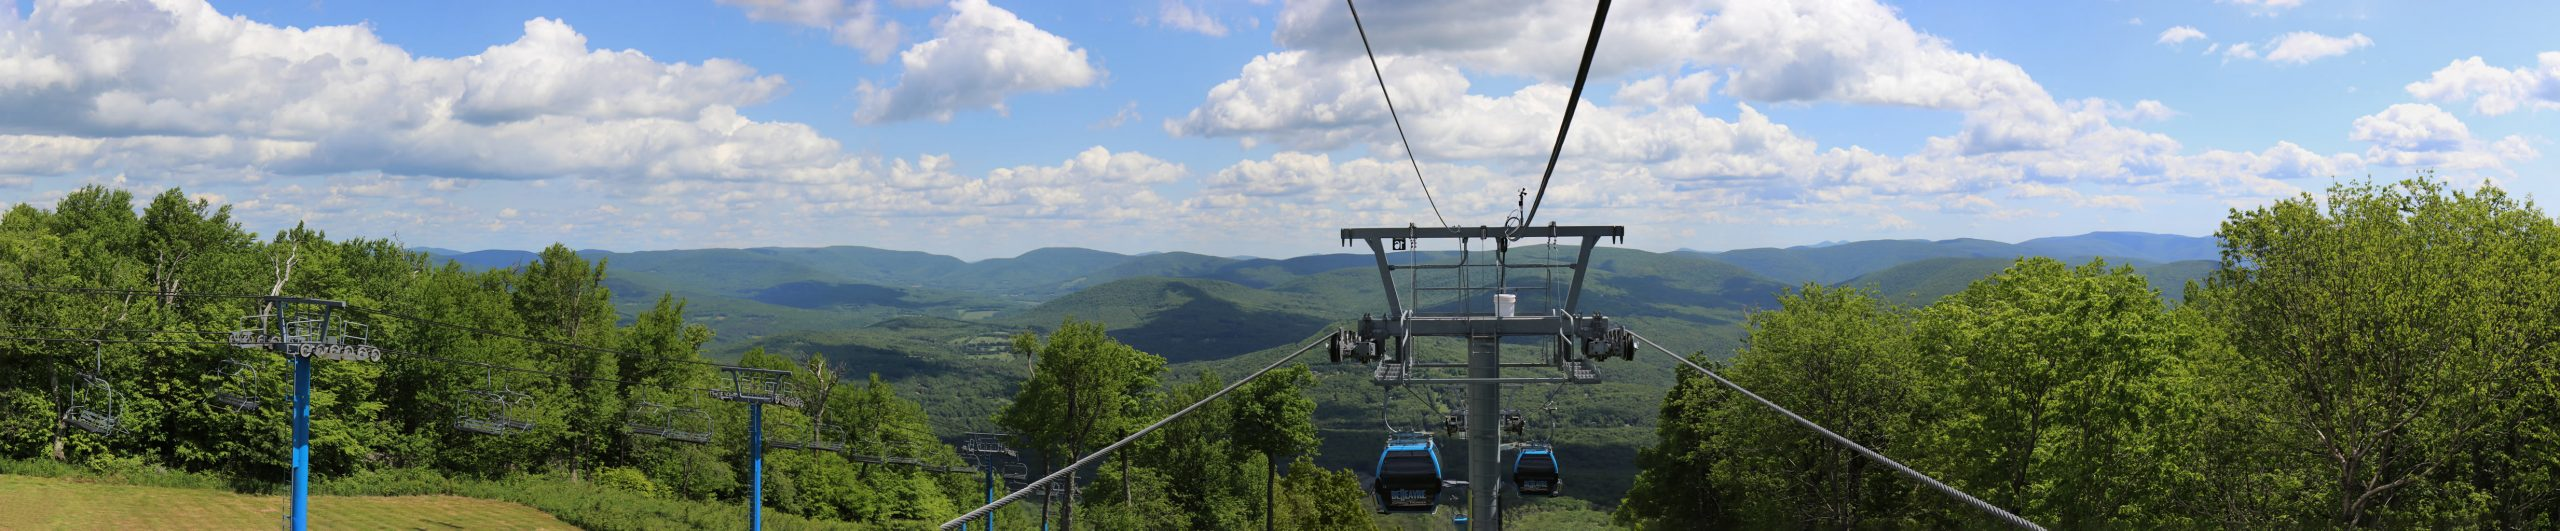 View of the Catskill Mountains from the Catskill Thunder Gondola